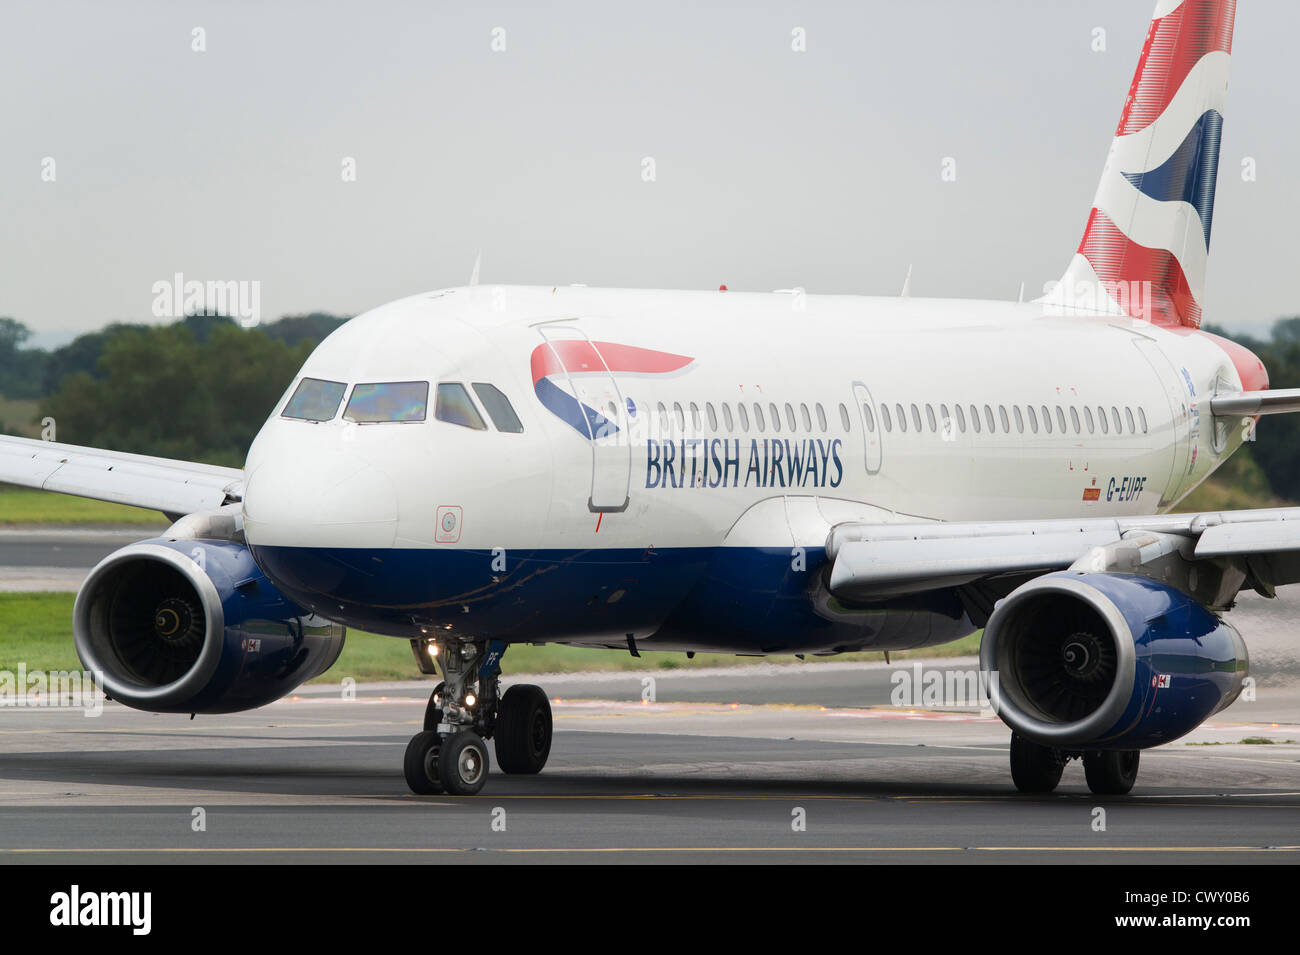 A British Airways Airbus A319 taxiing on the runway of Manchester International Airport (Editorial use only) - Stock Image